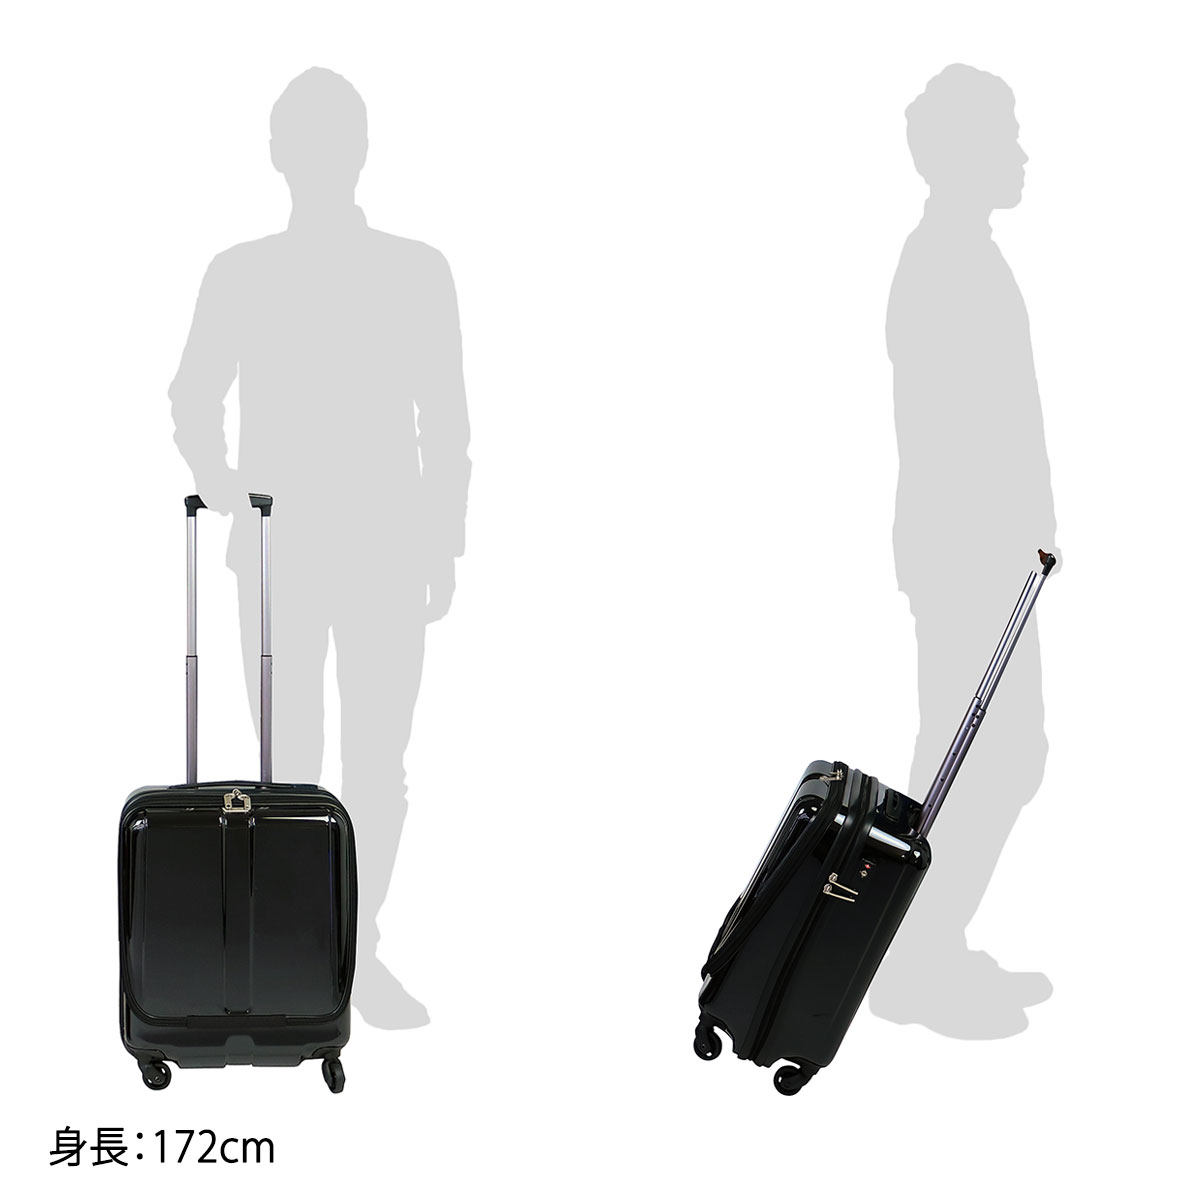 ACE traveller suitcase ACE World Traveler carry case plow new # 05810 cabin carry-on zip 38L one or two nights about compact S size TSA lock hard travel